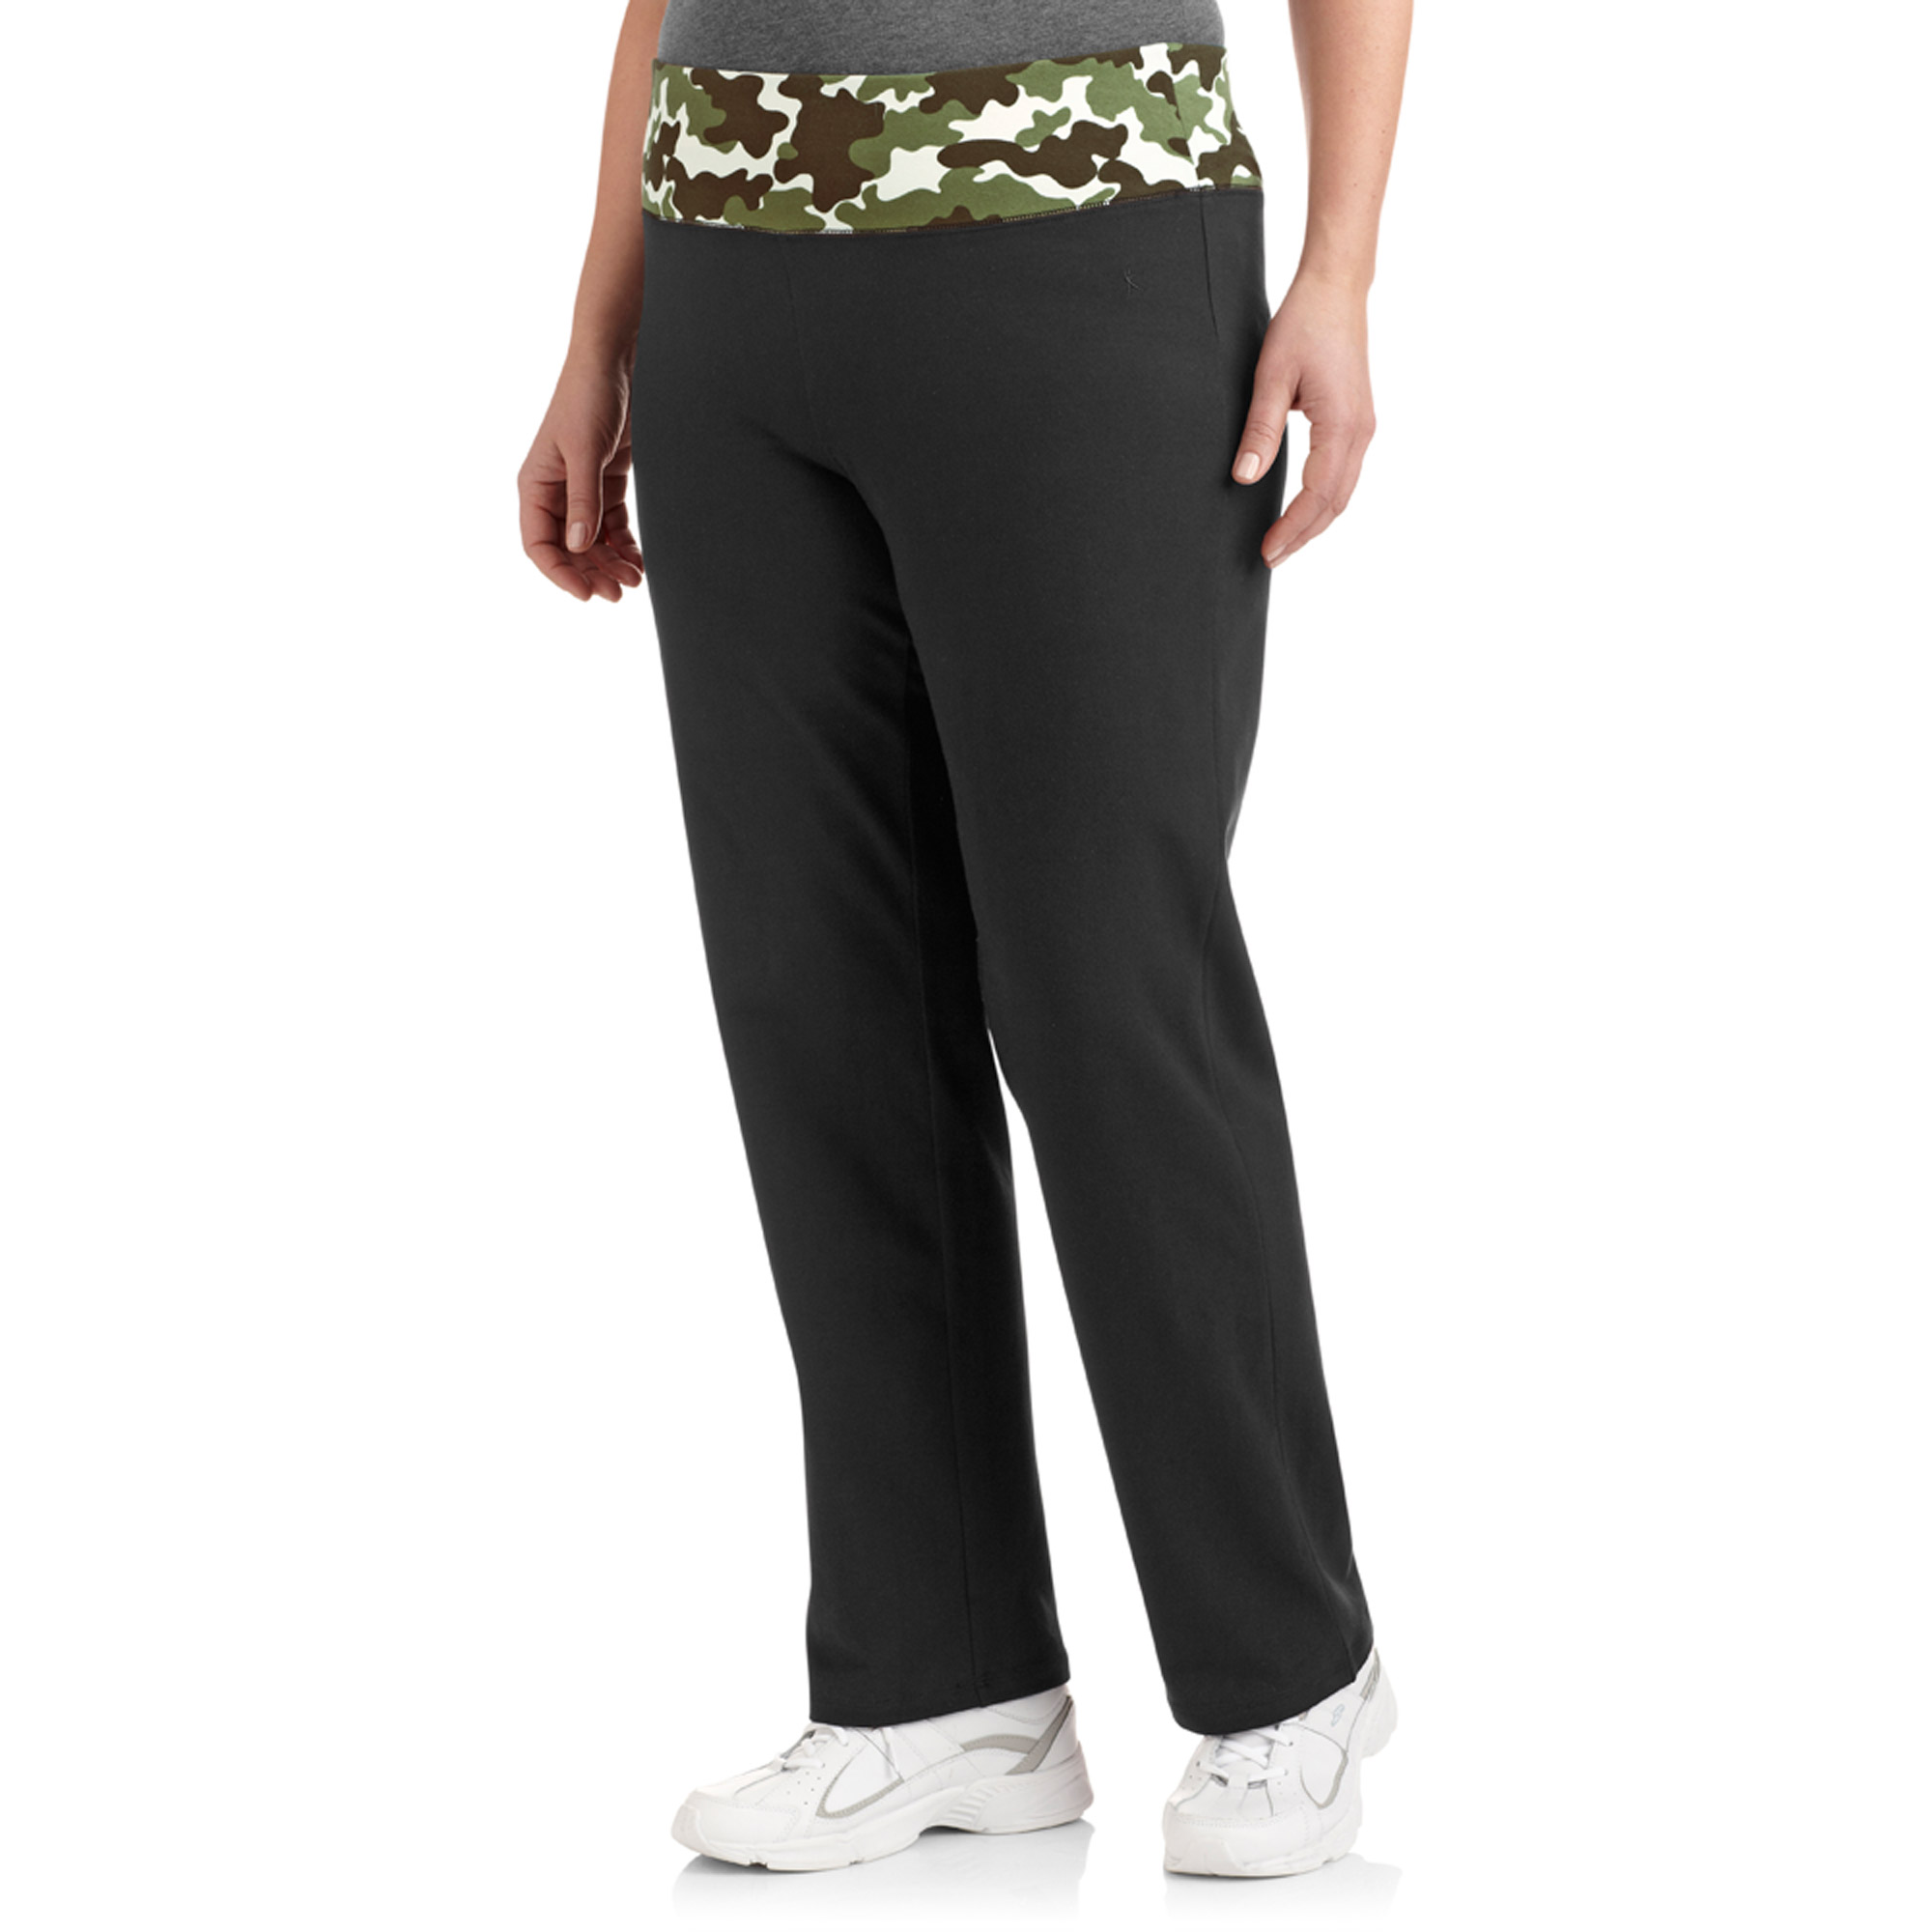 Danskin Now Women's Plus-Size Yoga Pant with Printed Waistband